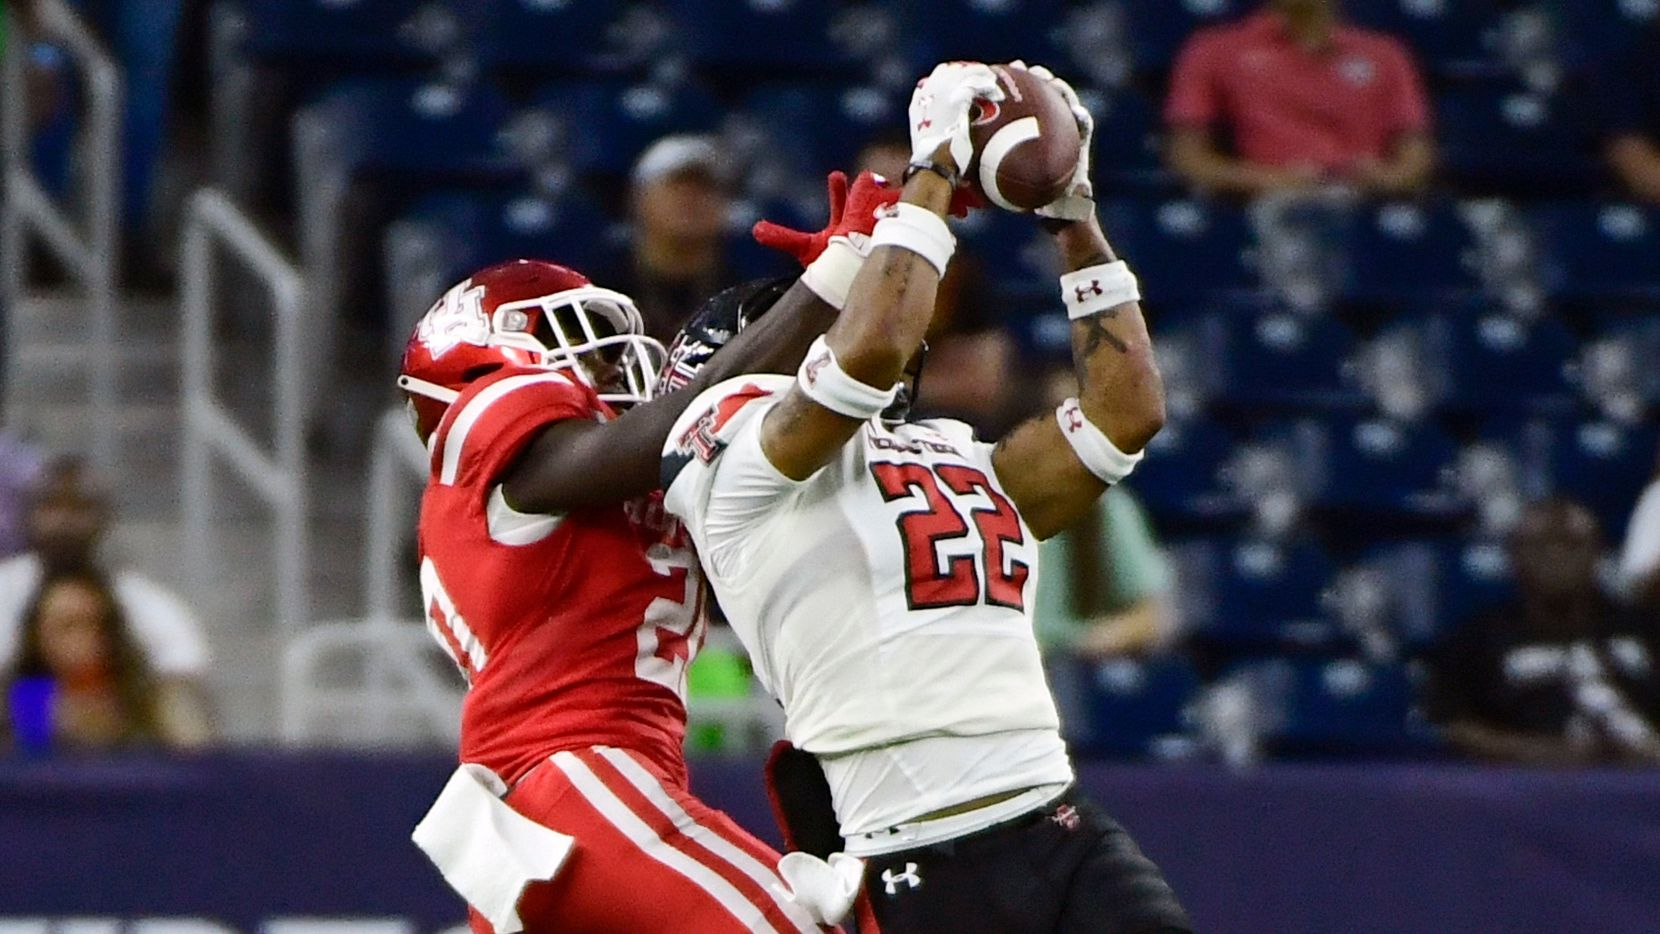 Texas Tech defensive back Reggie Pearson Jr. (22) intercepts a pass under Houston wide receiver KeSean Carter (20) from Houston quarterback Clayton Tune during the first half of an NCAA college football game Saturday, Sept. 4, 2021, in Houston.